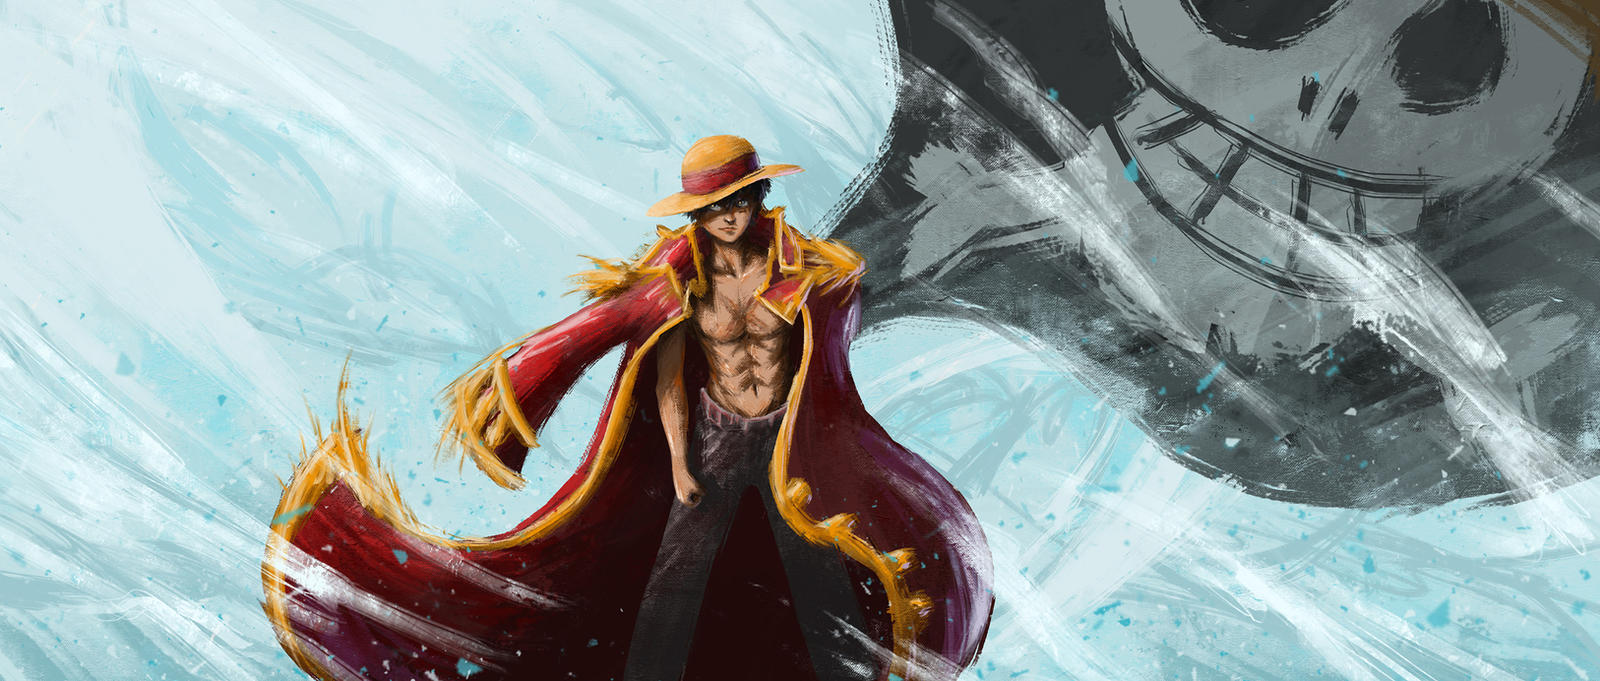 Monkey D Luffy The Pirate King By Yarigrafight On Deviantart